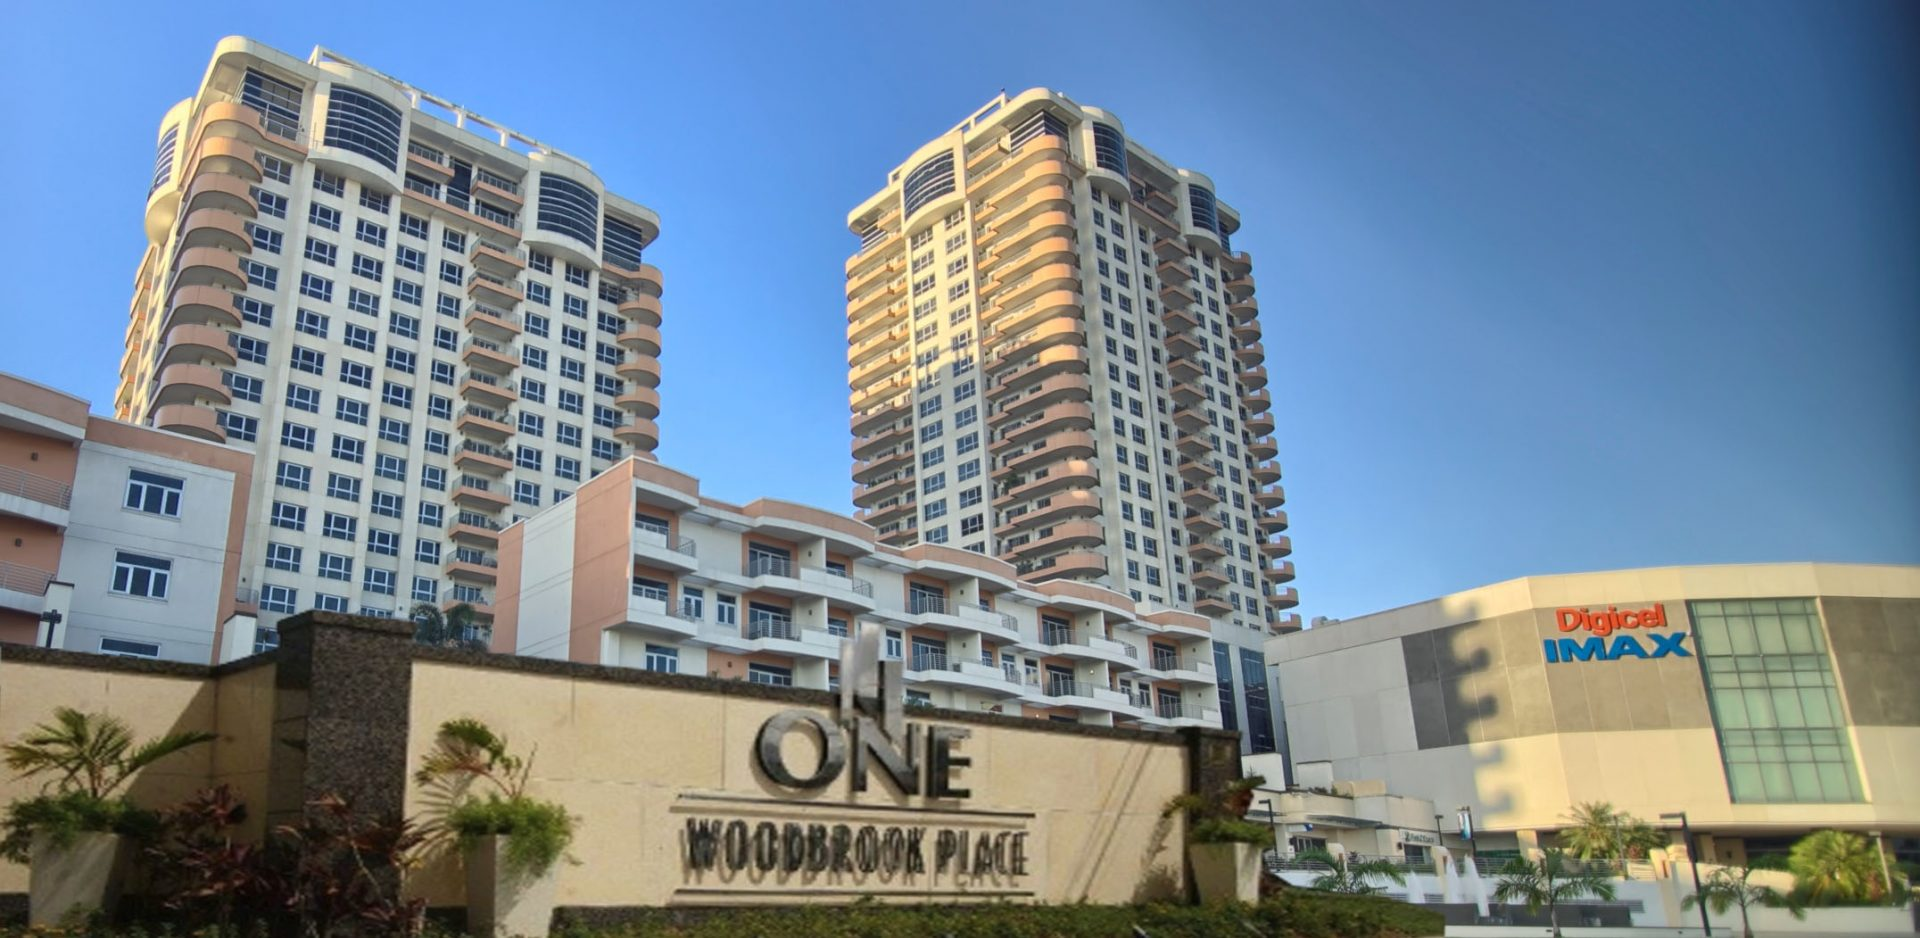 One WoodBrook Place, Tower 2, Floor 9